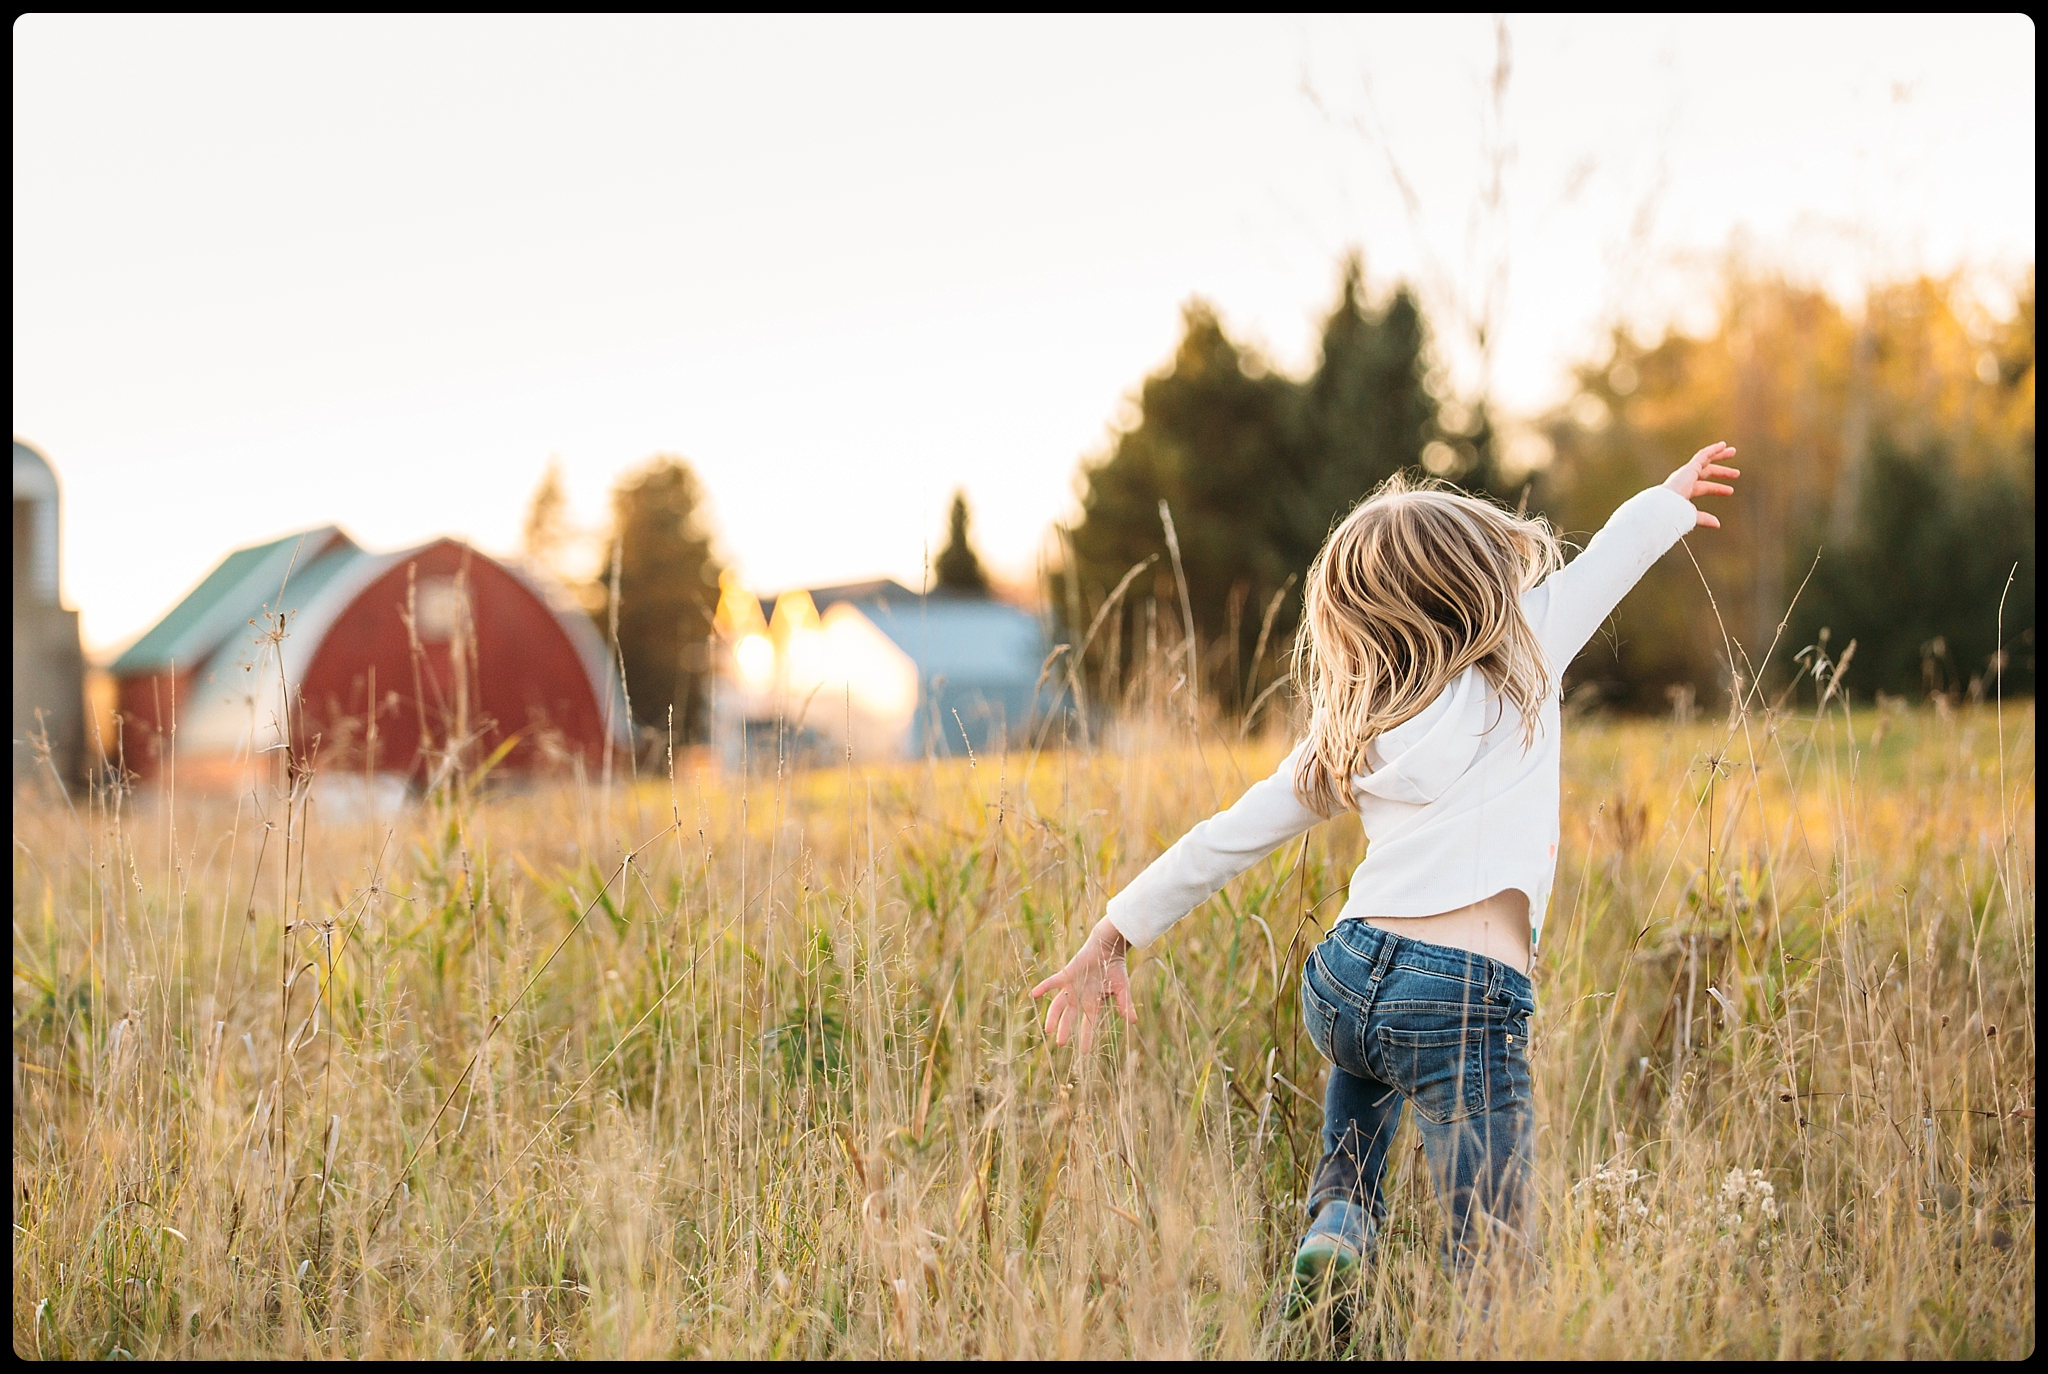 Girl playing in a field near a barn.